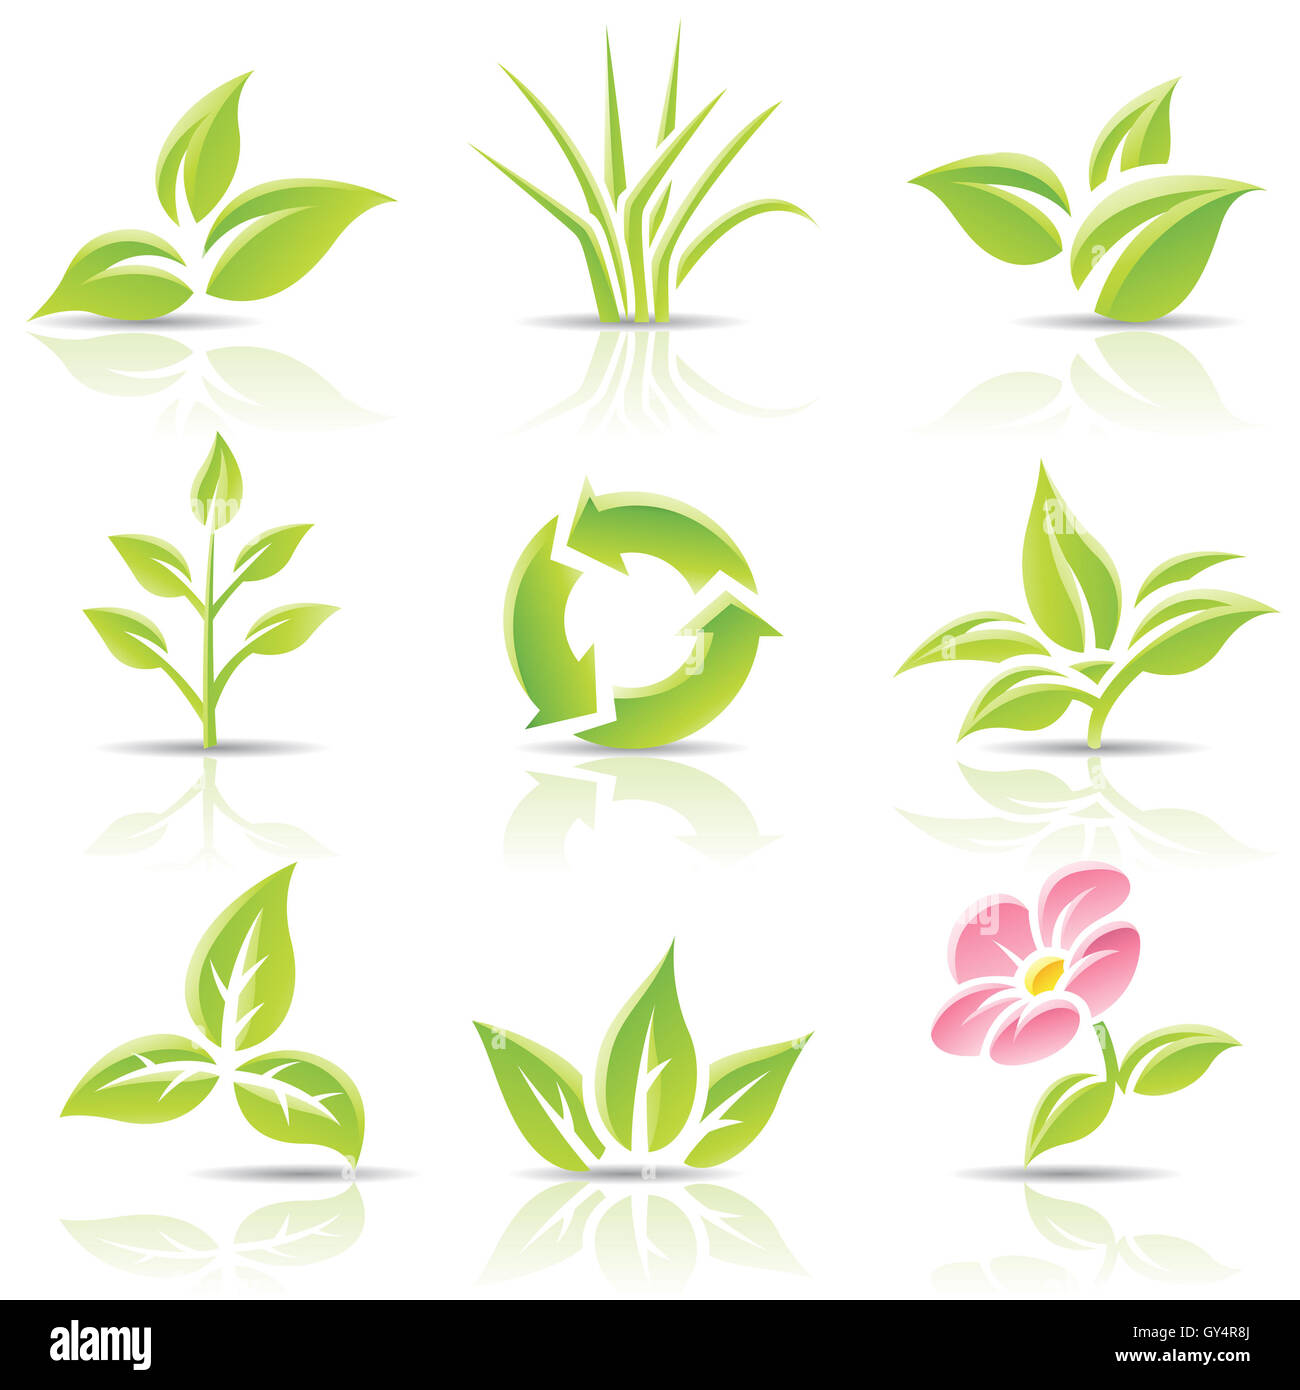 Vector icons of leaves and a flower - Stock Image